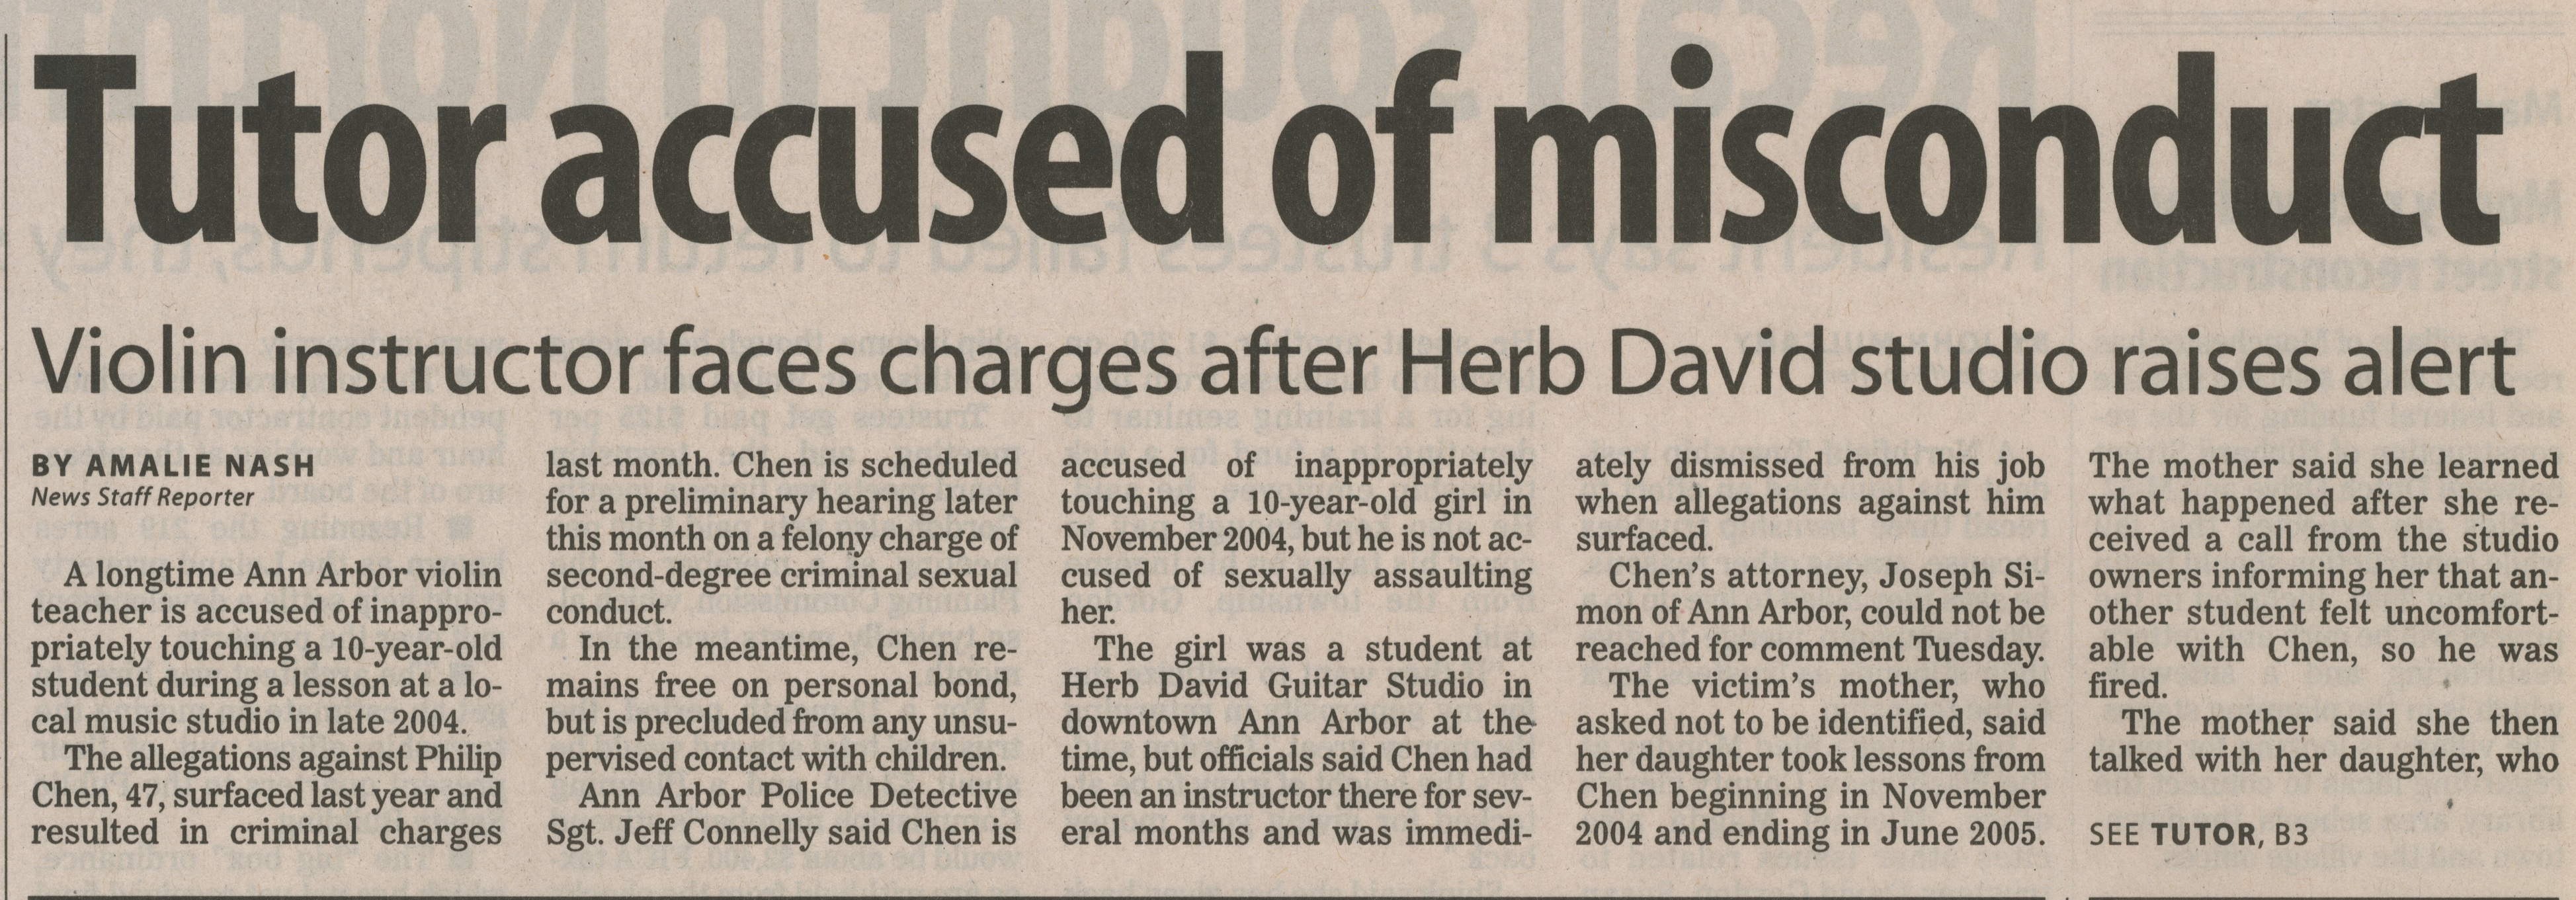 Tutor Accused of Misconduct: Violin Instructor Faces Charges After Herb David Studio Raises Alert image